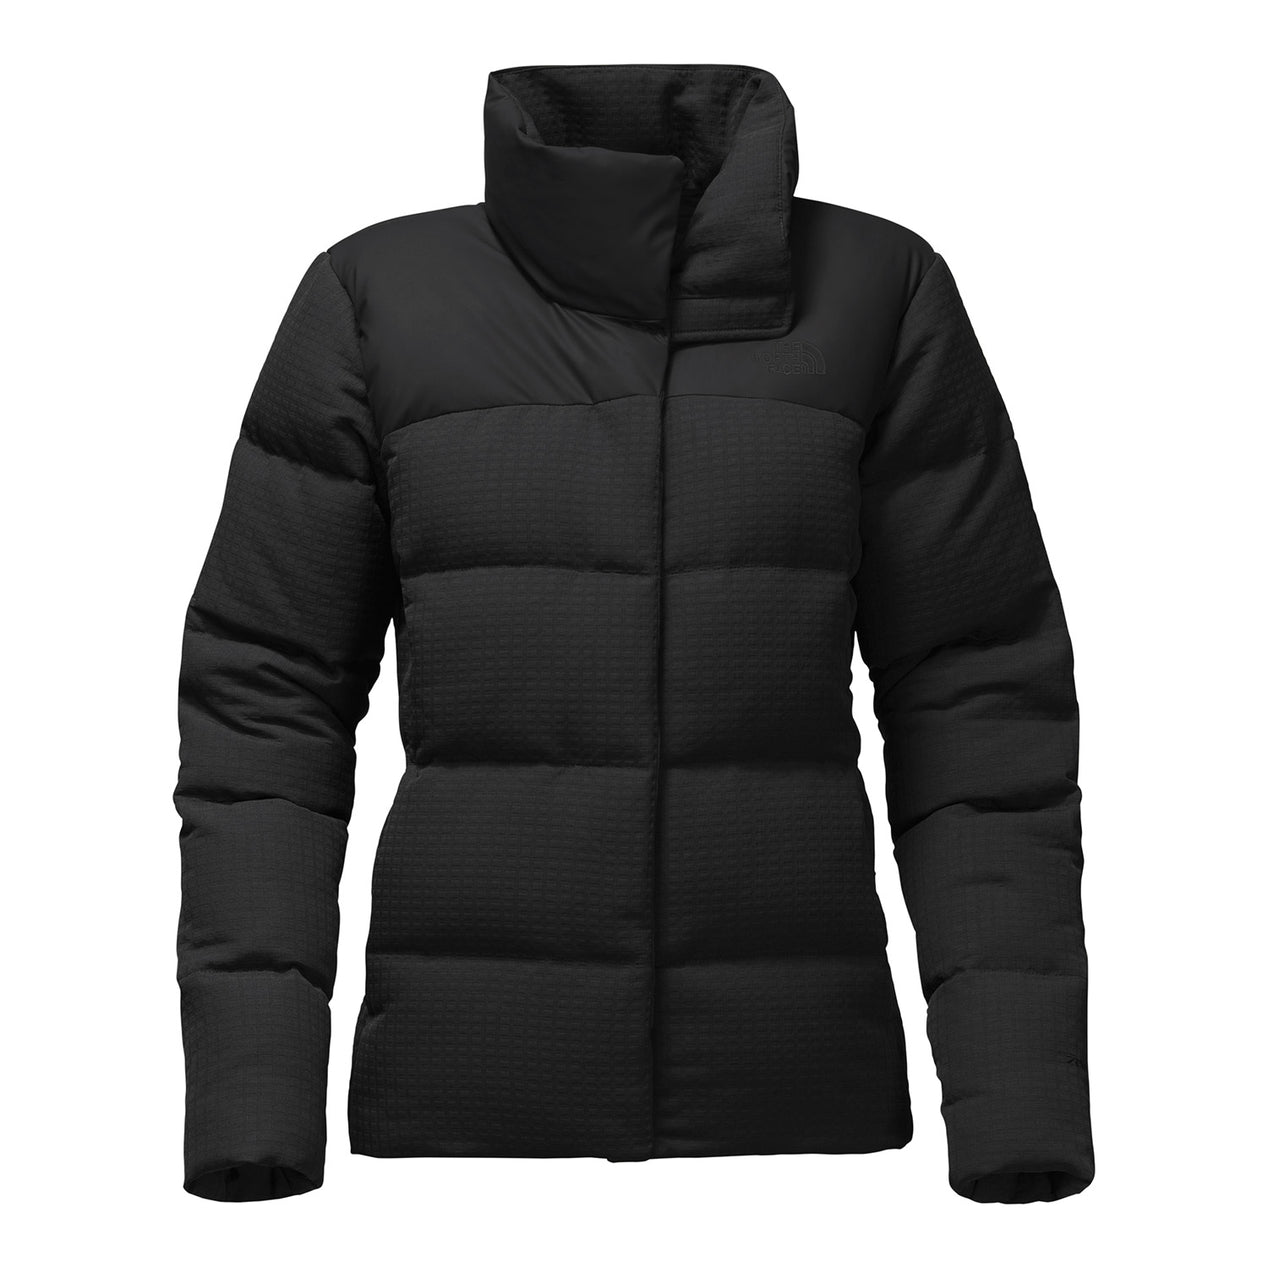 4292aa44b Women's Novelty Nuptse Jacket